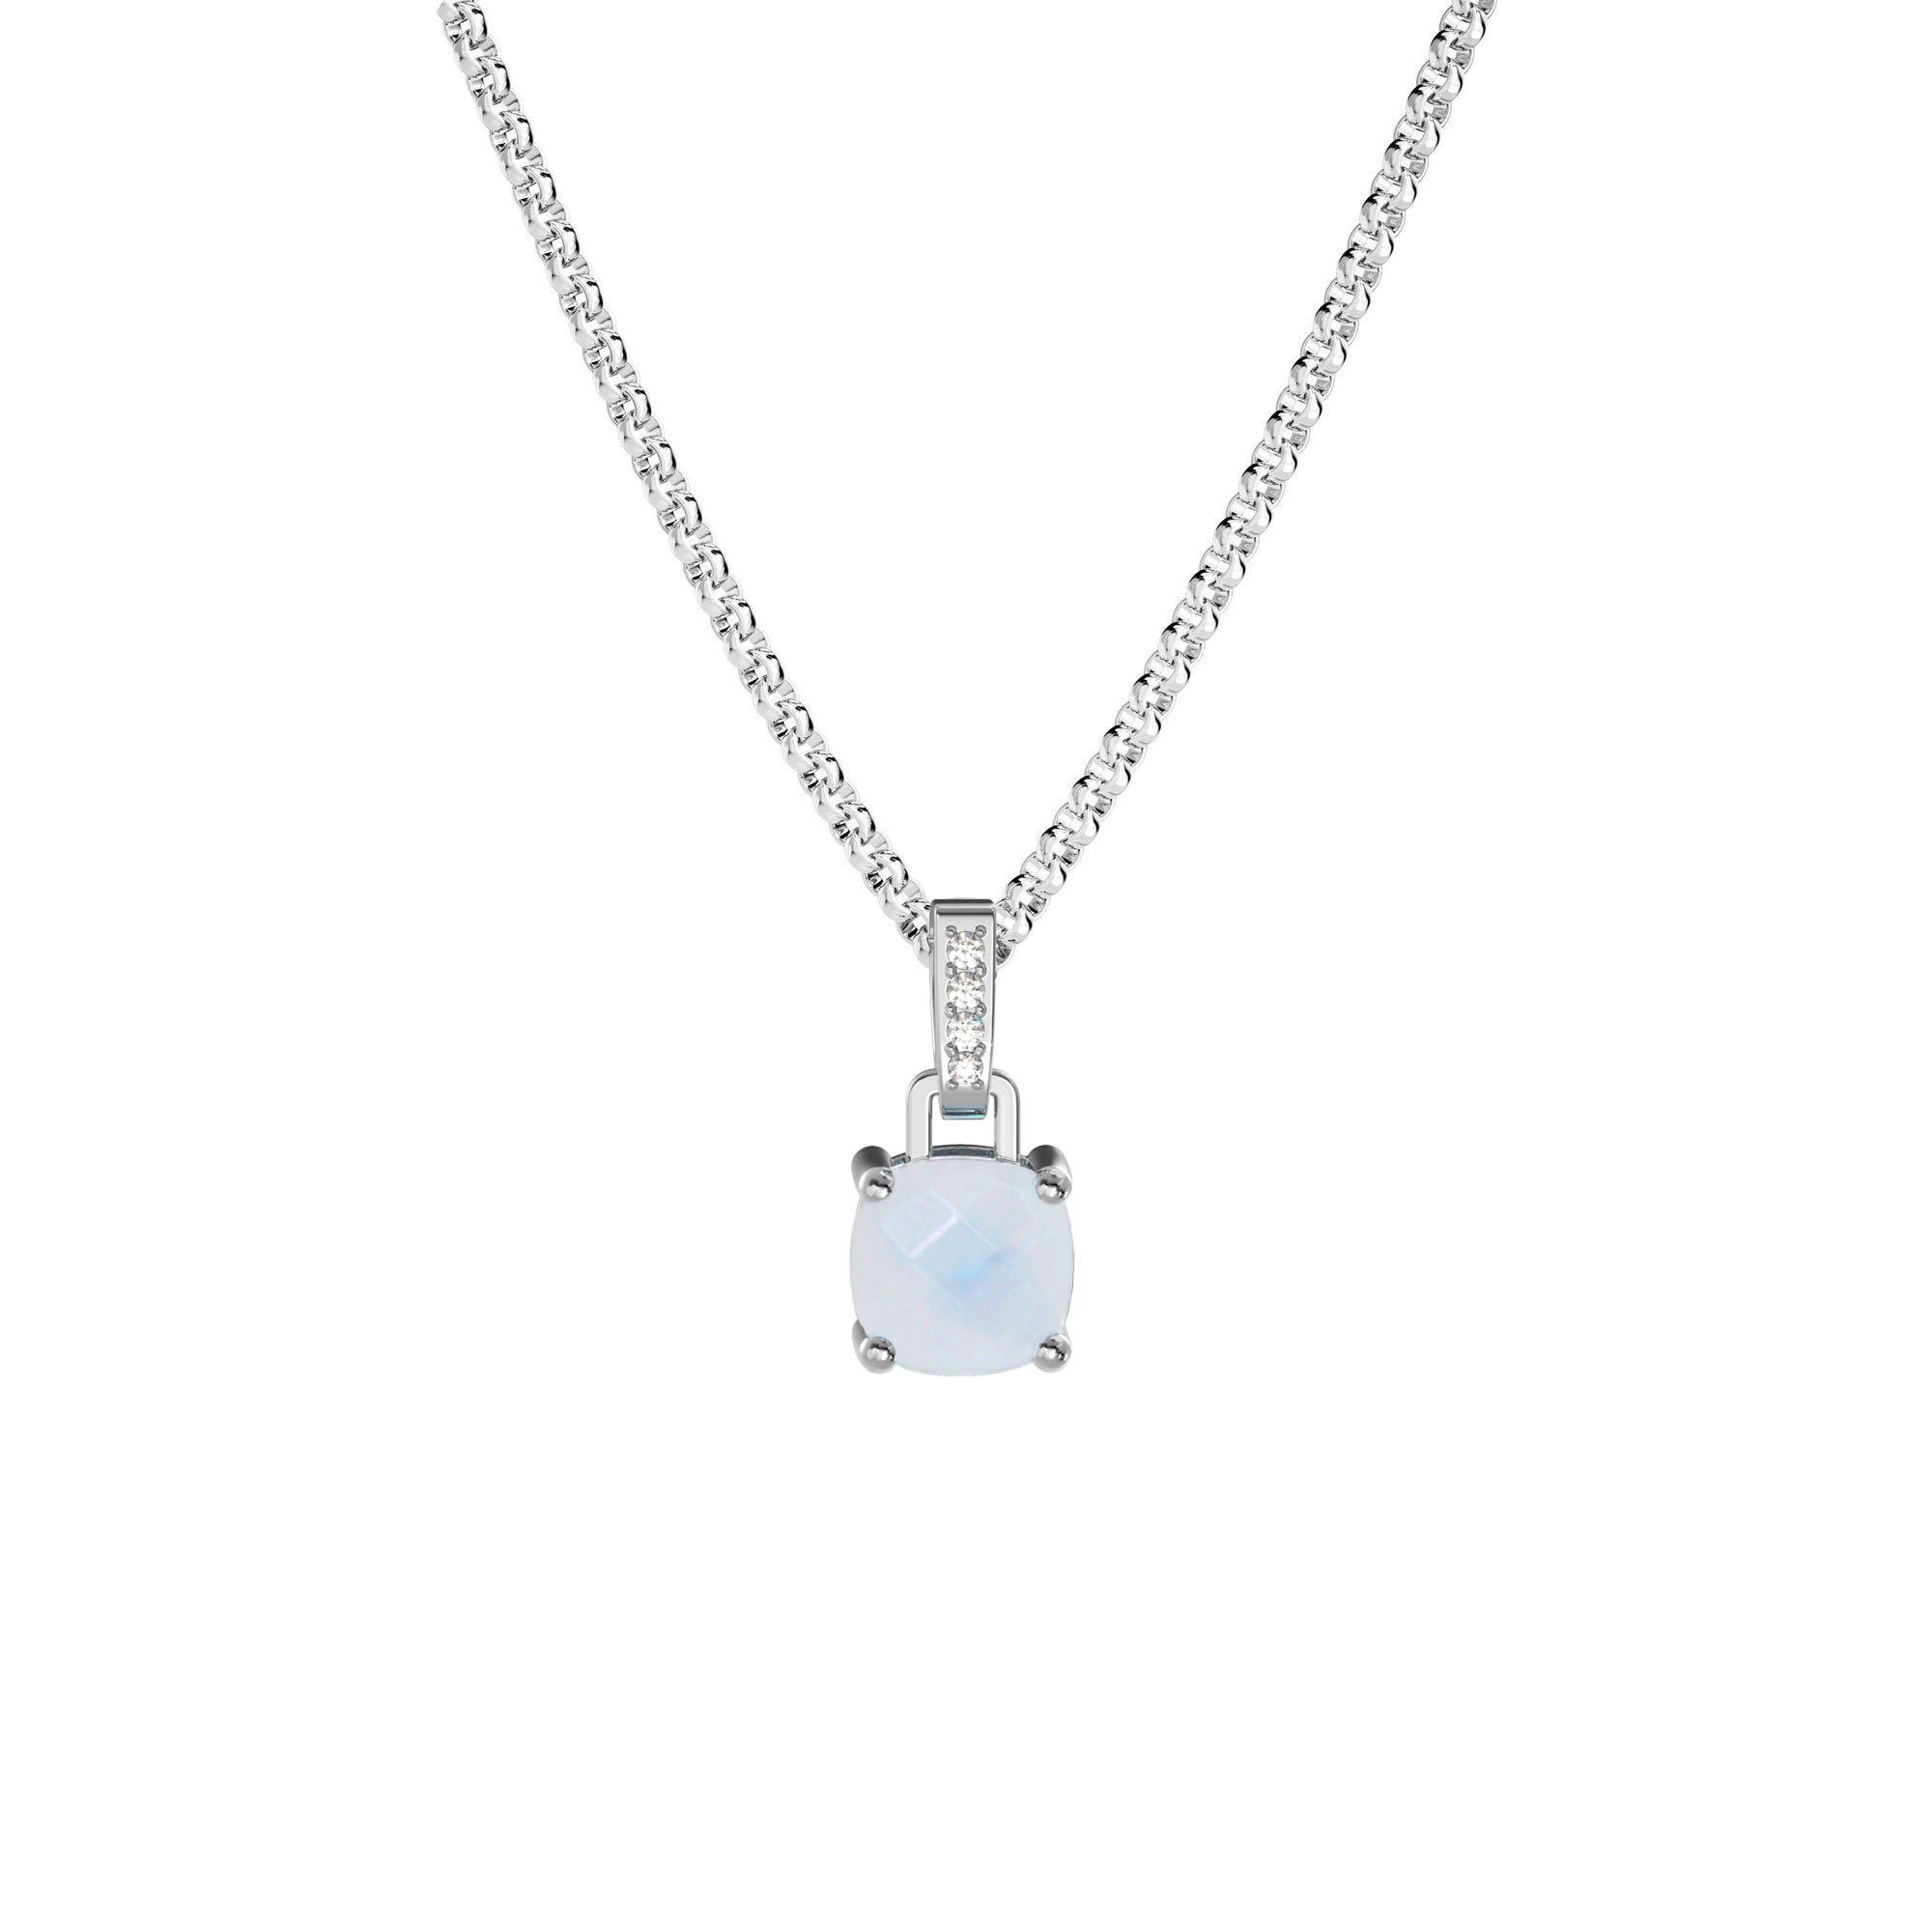 925 Silver Classic Series Necklace - Felicia (Moonstone)